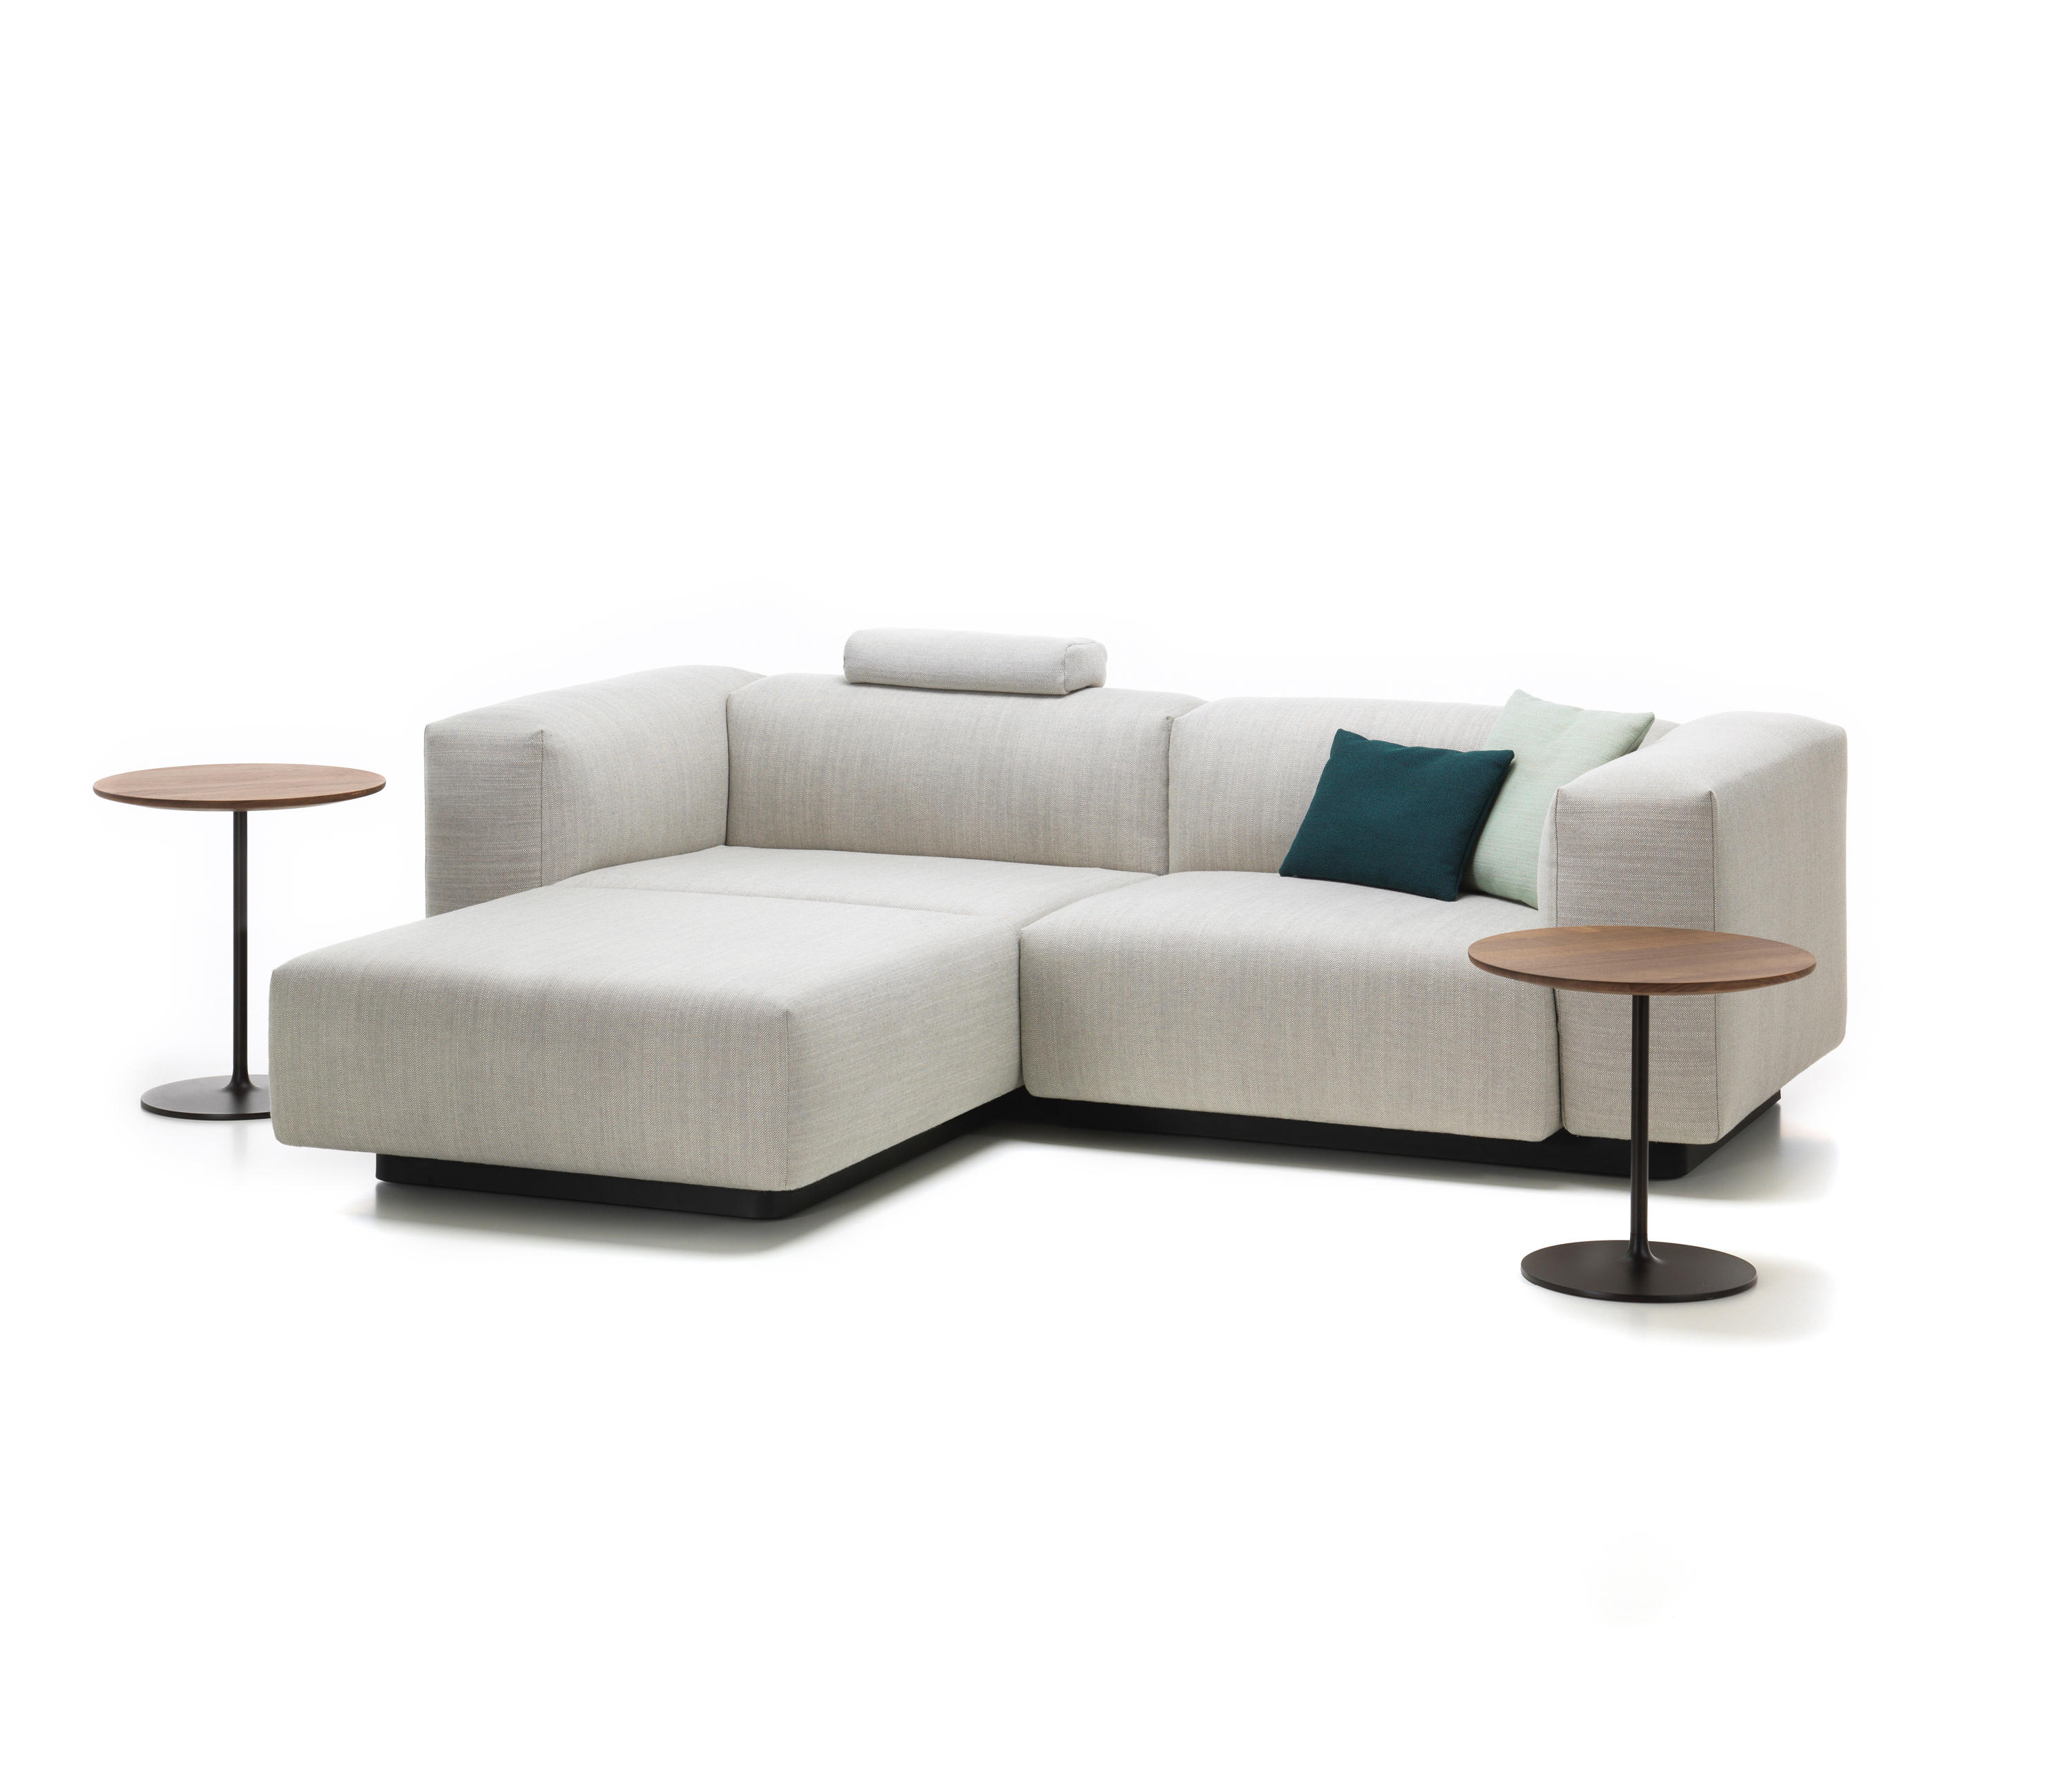 Modular chaise sofa chaise sofa modular sectional sofas for 2 5 seater sofa with chaise